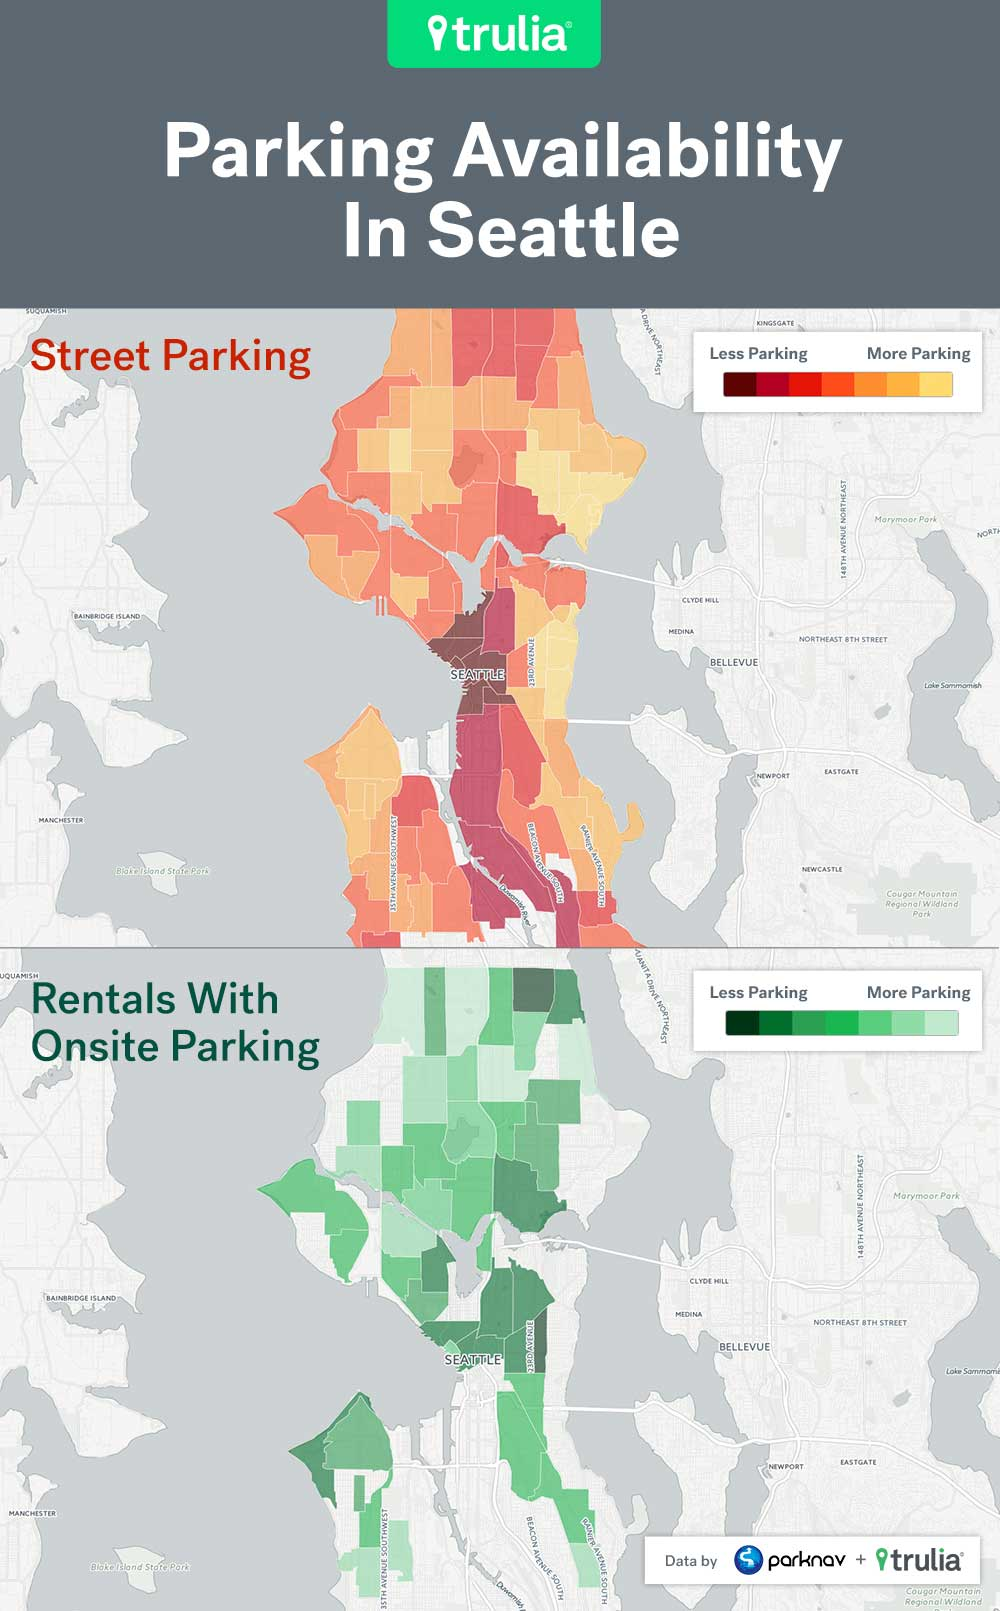 Seattle Parking Map Best And Worst Places For Renters To Park In The Big City   Trulia  Seattle Parking Map